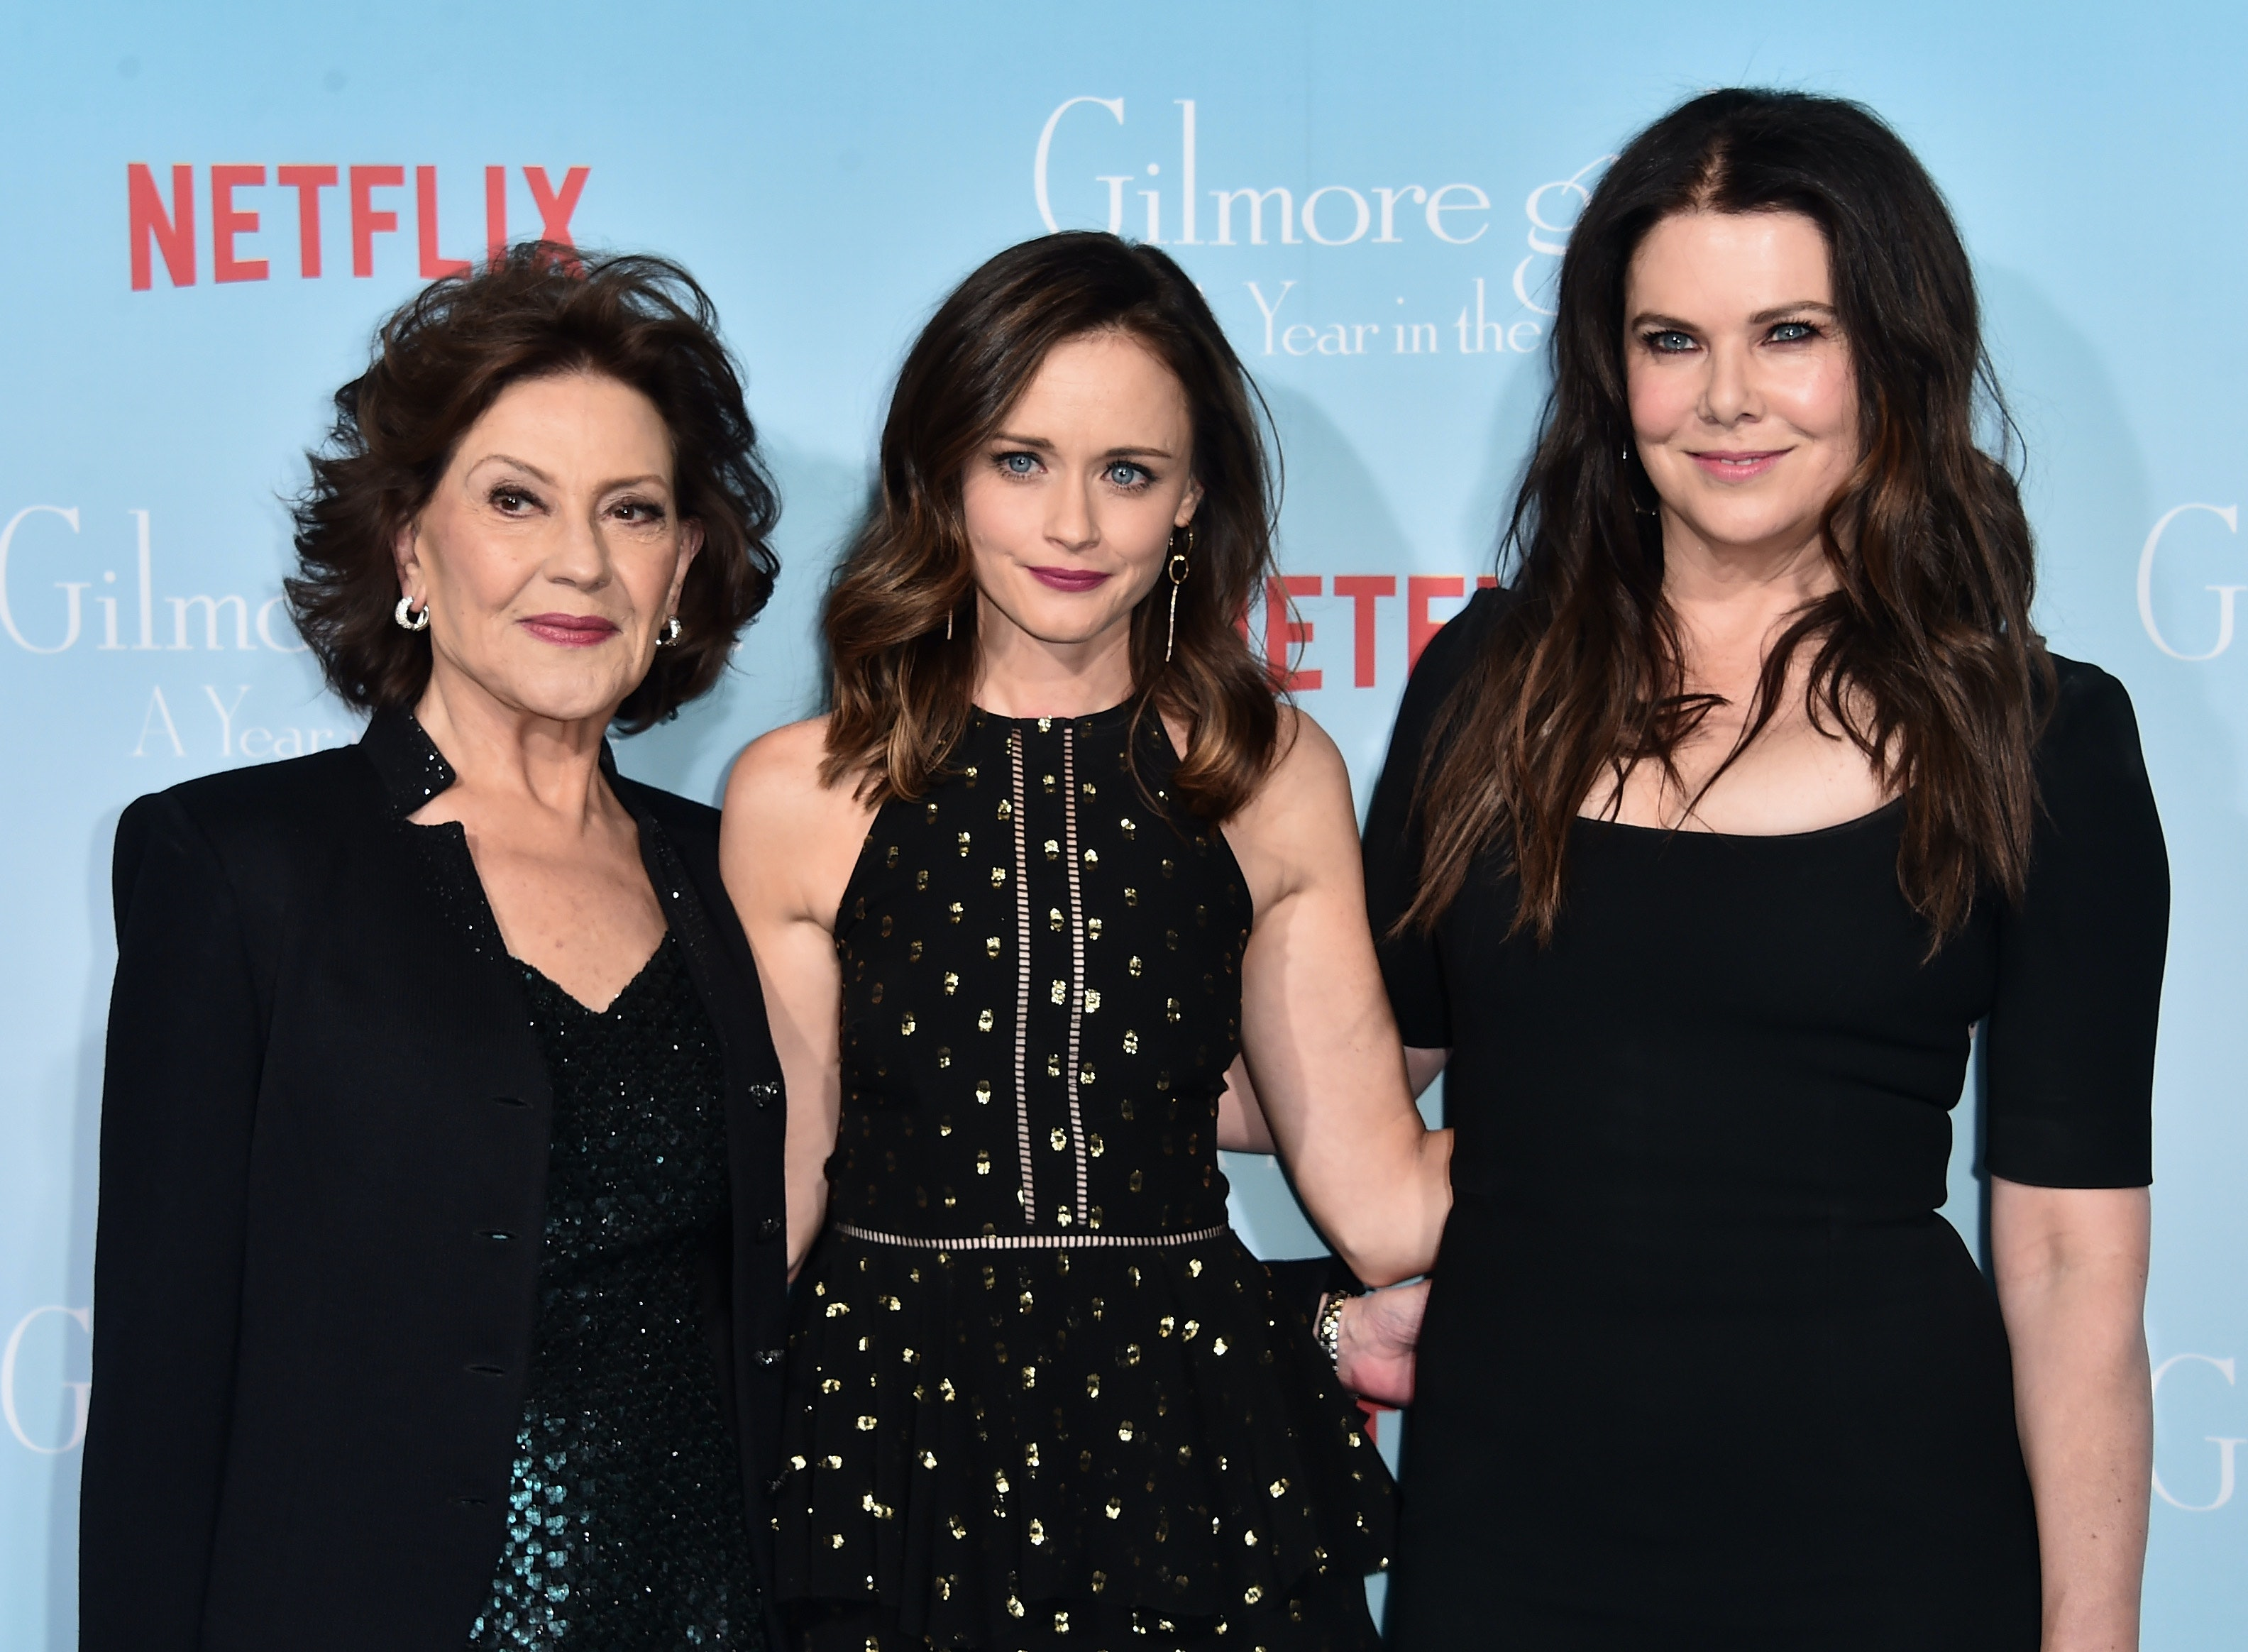 Want More Gilmore Girls Episodes? It's 'Definitely Possible,' Show Creator Says